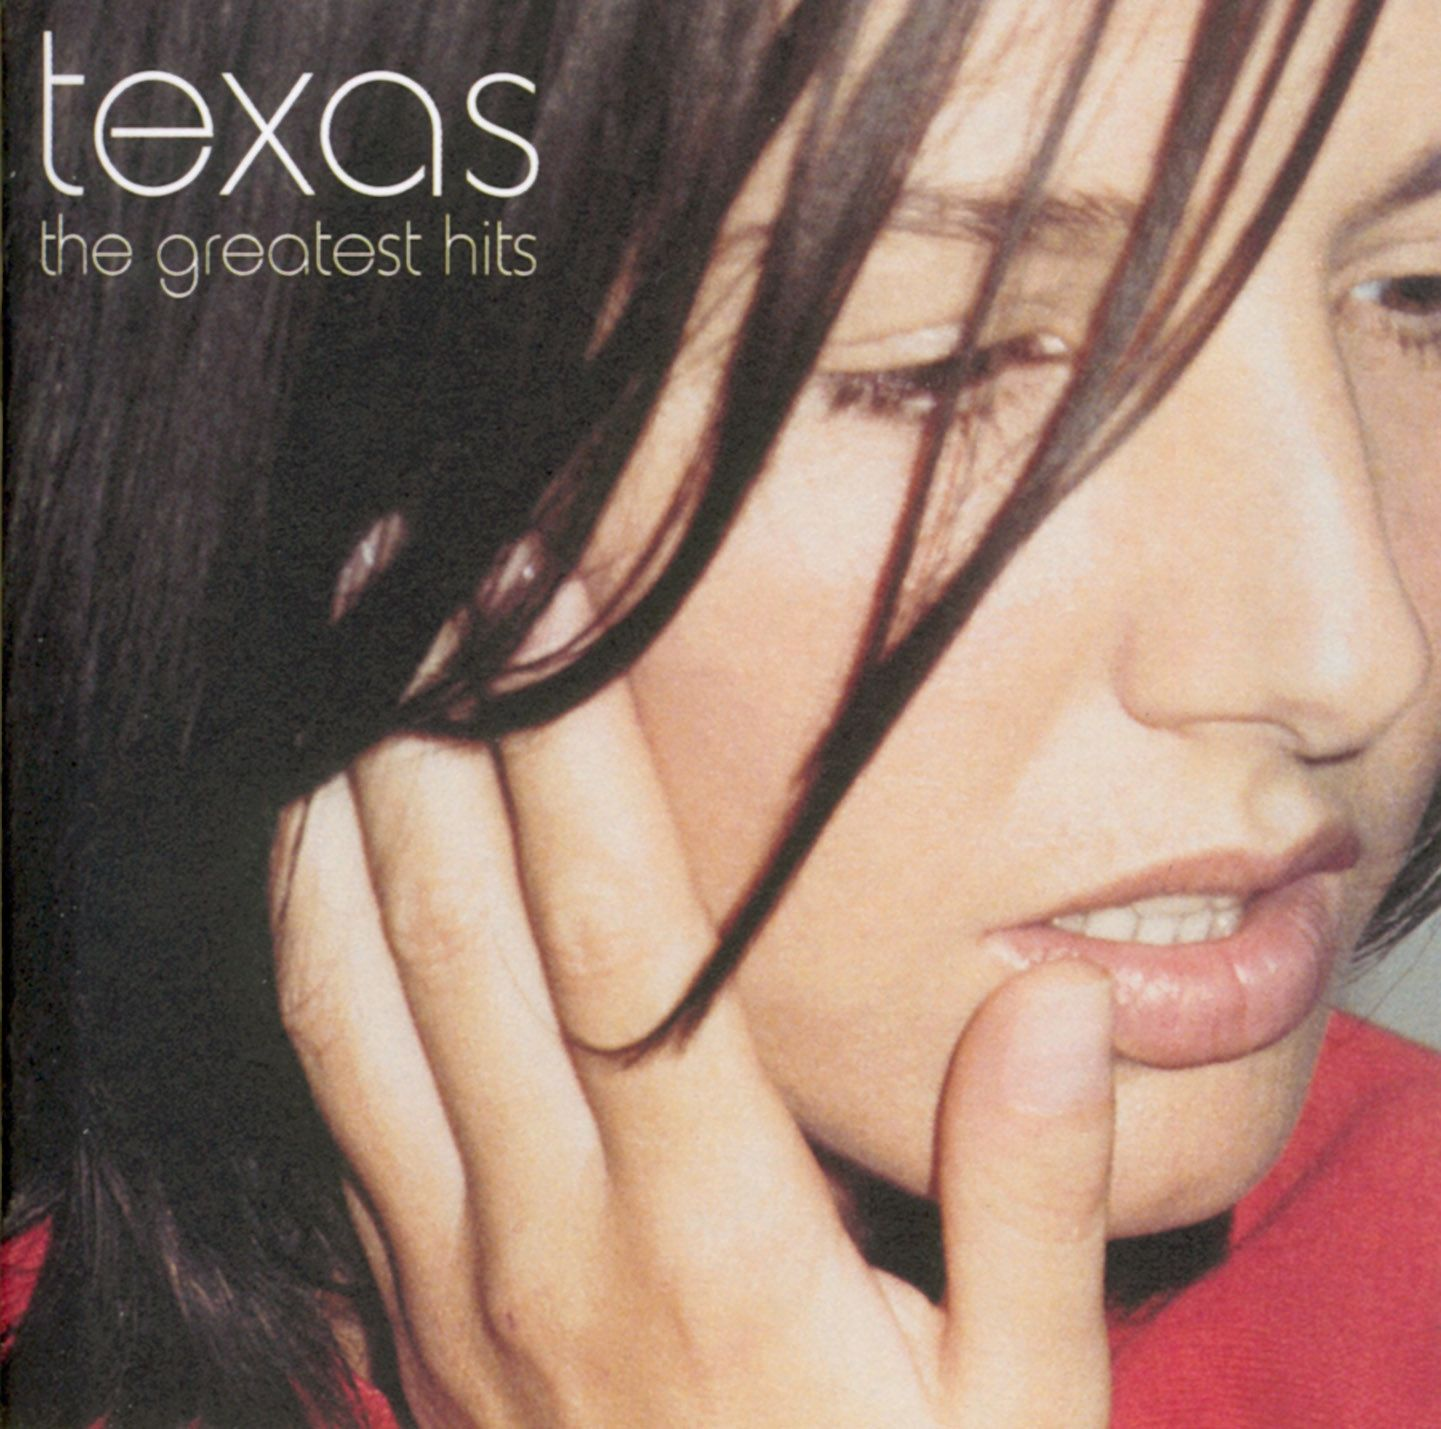 Texas - The Greatest Hits album cover